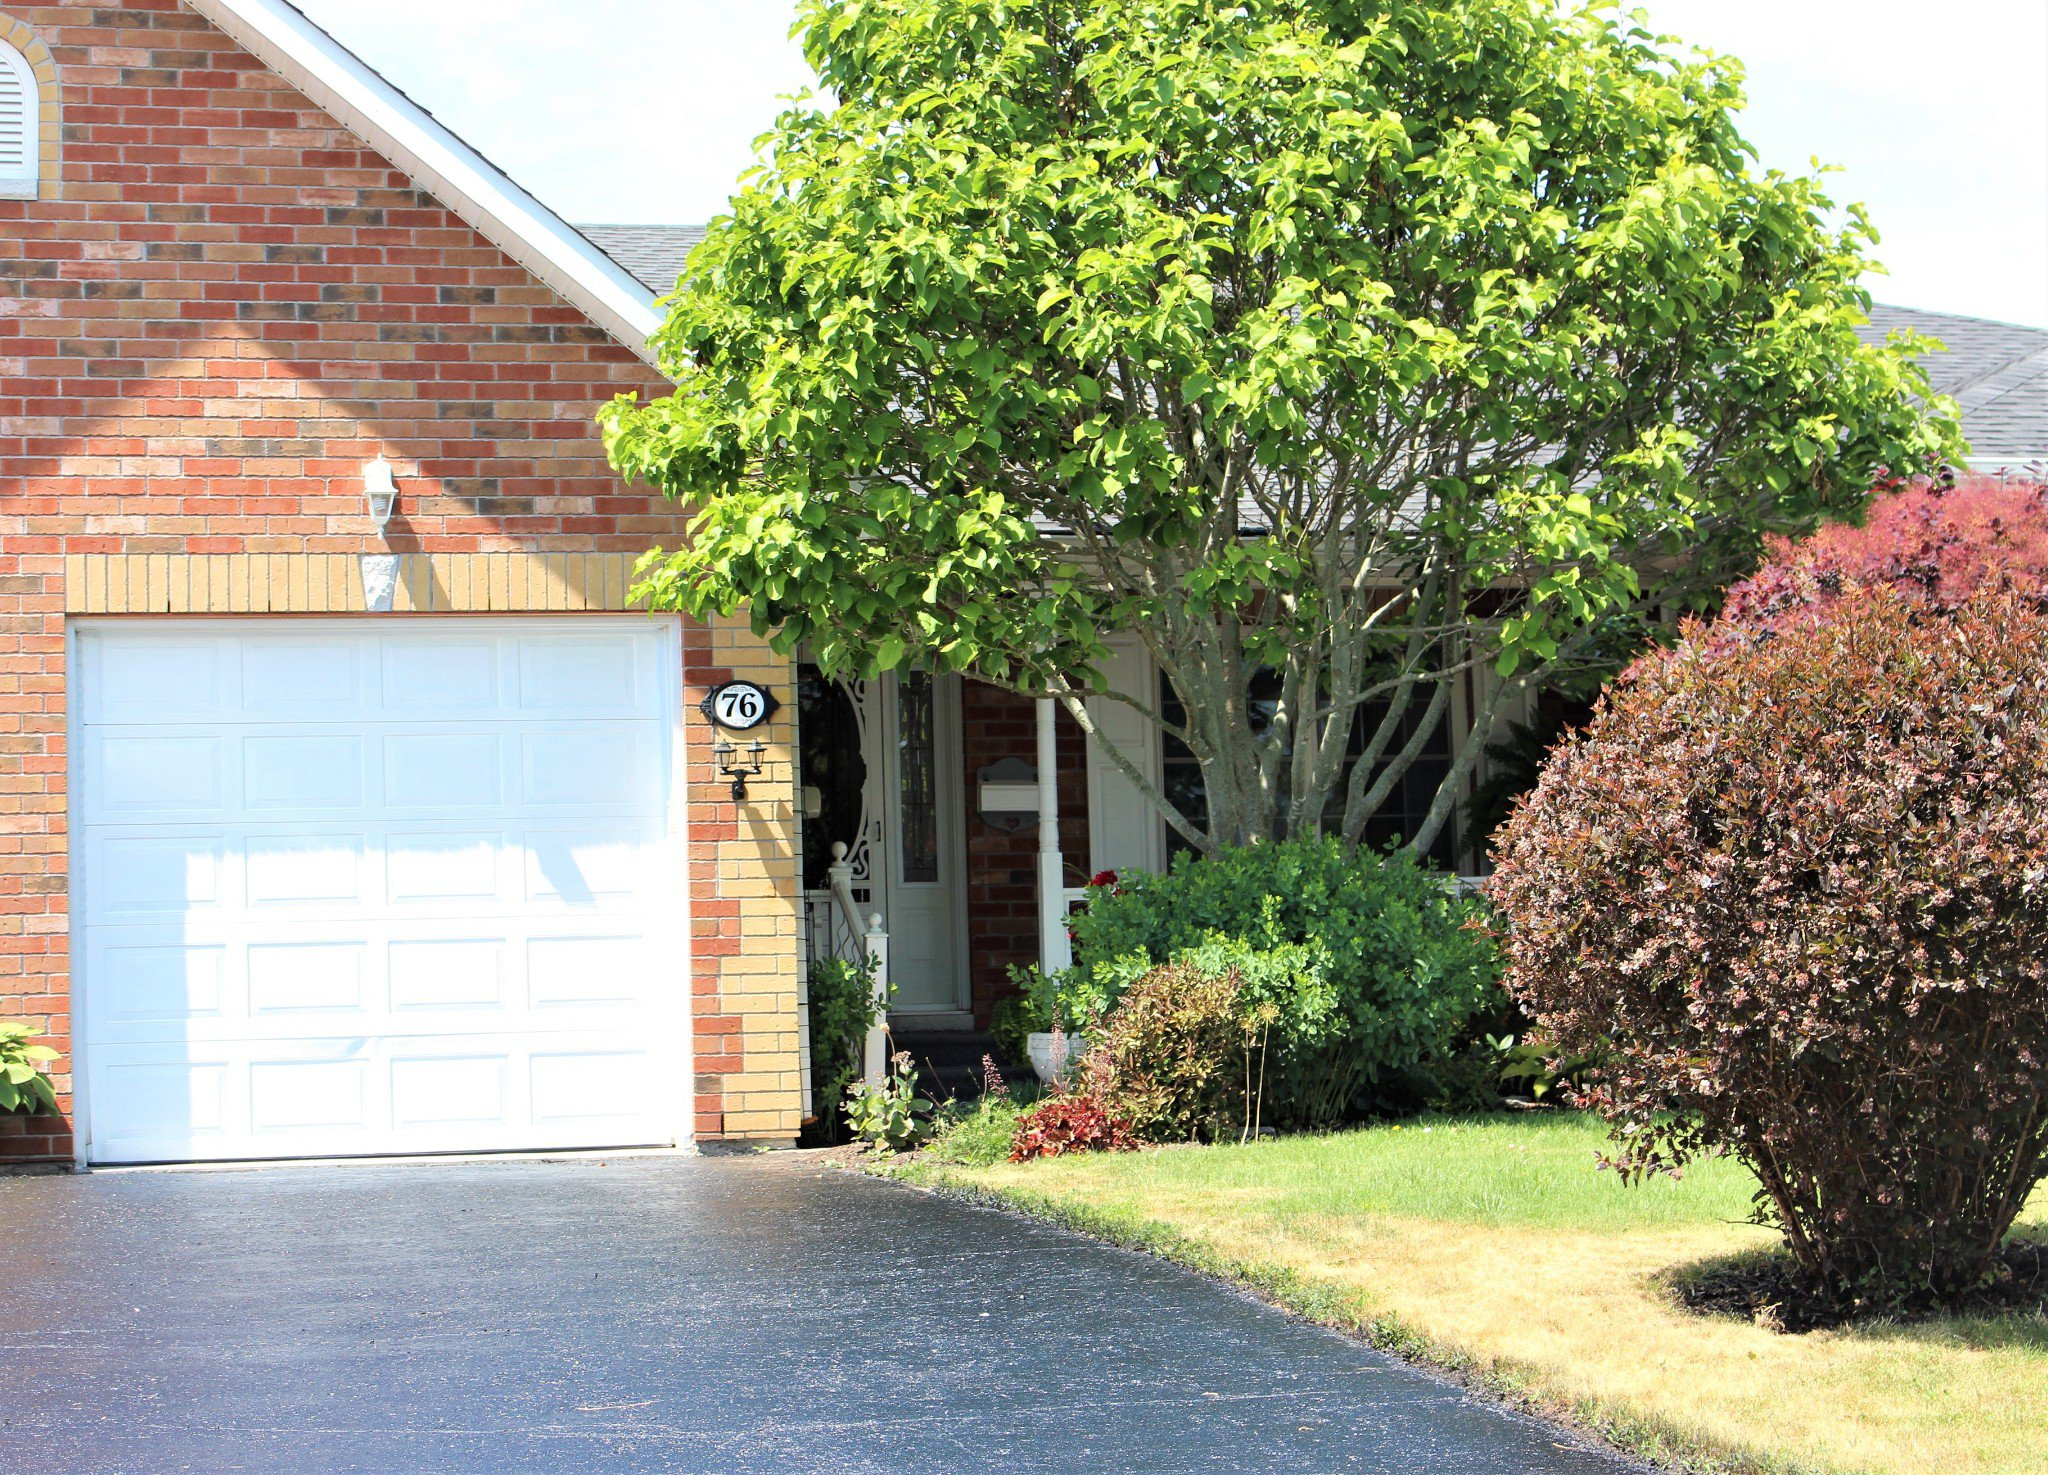 Main Photo: 76 Trefusis Street in Cobourg: Residential Attached for sale : MLS®# 212422